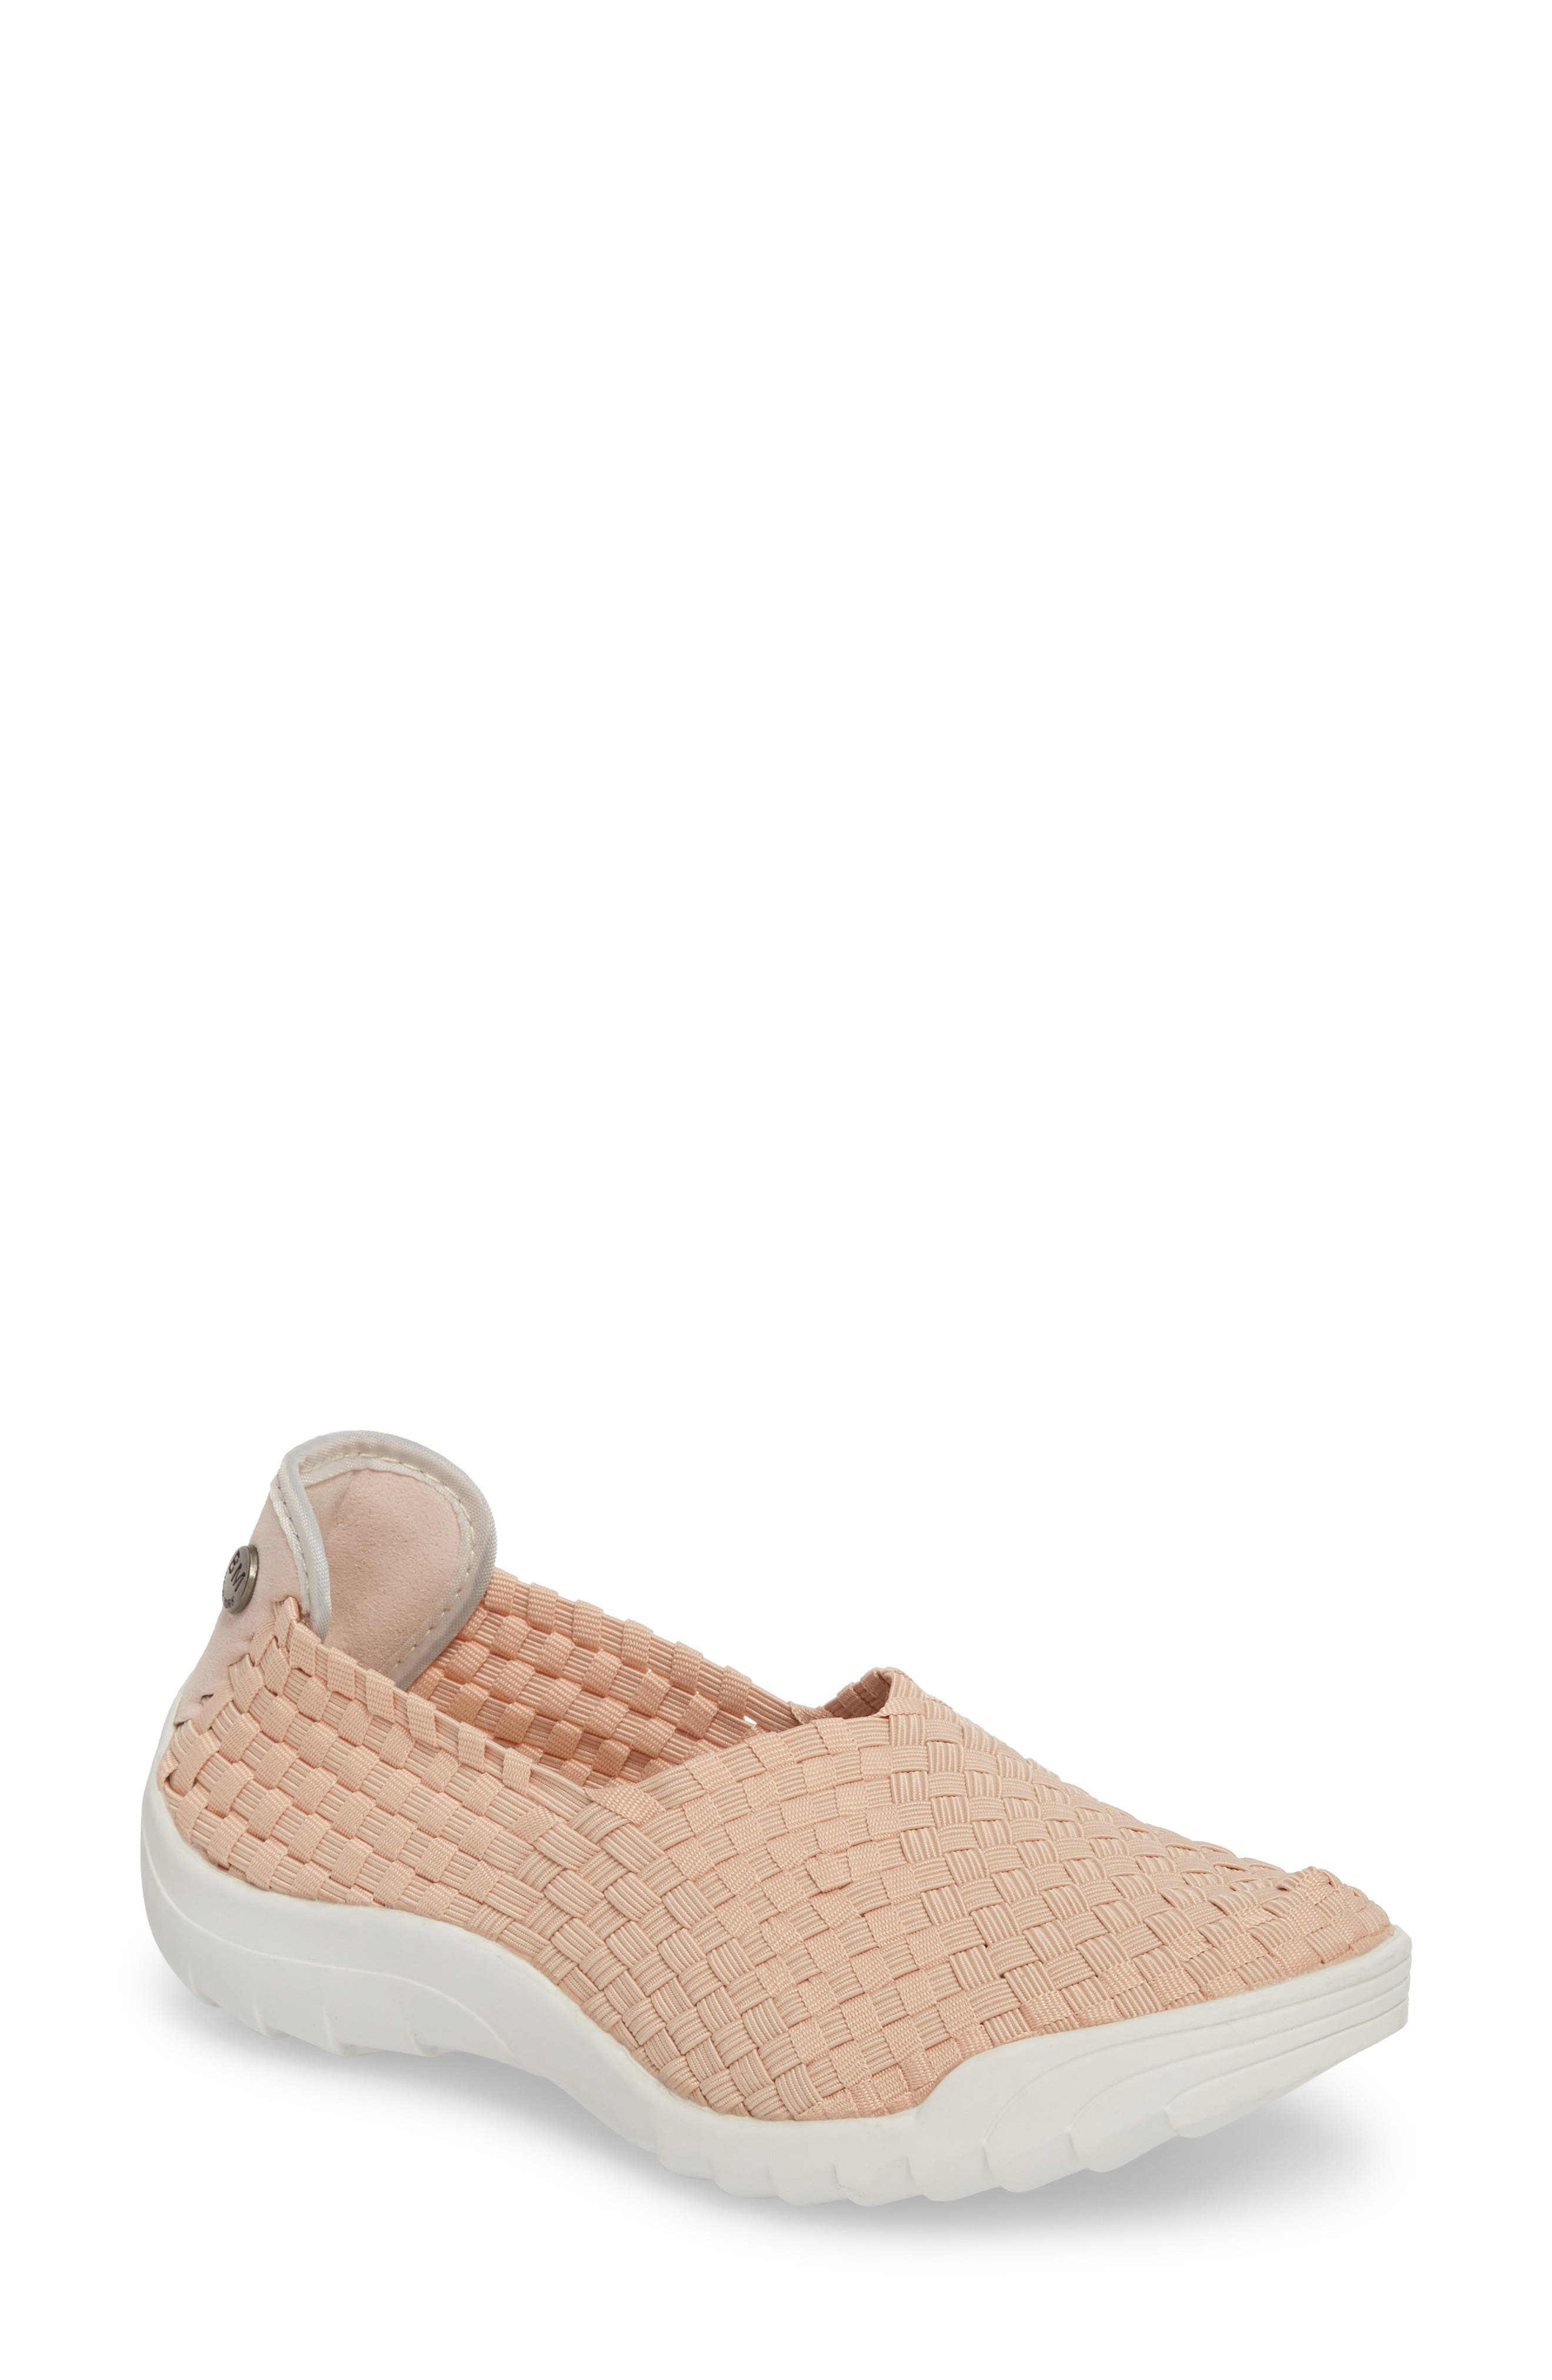 Rigged Fly Slip-On Sneaker,                         Main,                         color, Blush